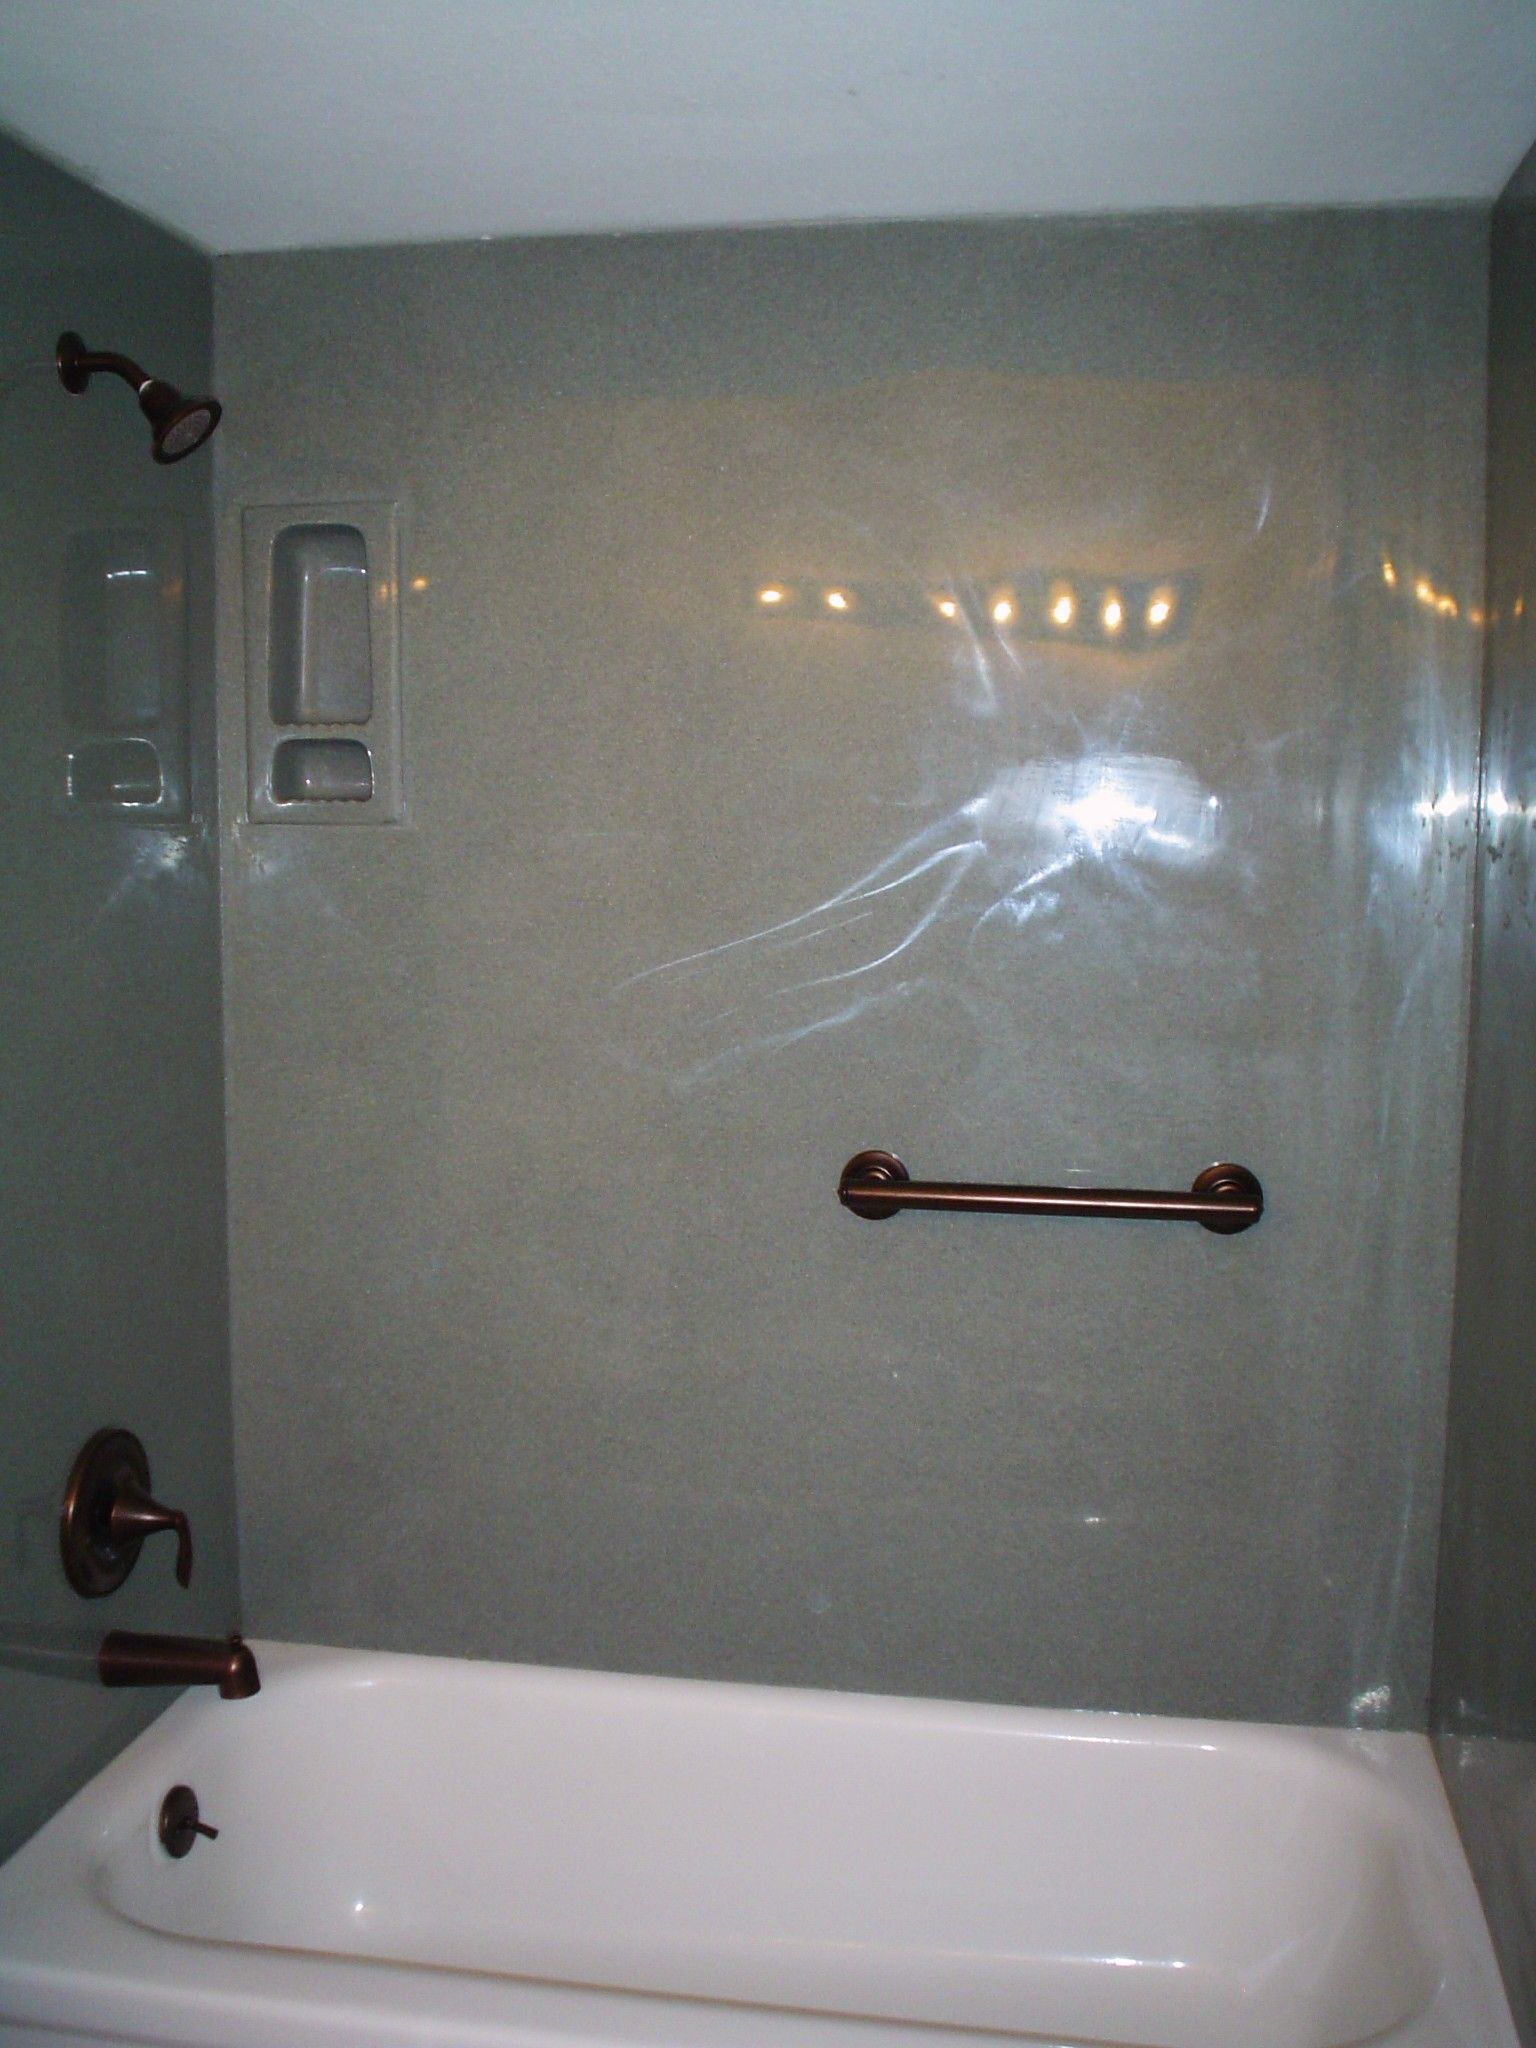 Cultured Marble Shower Walls Copyright 2009 A Better Look All Rights Reserved Cultured Marble Shower Marble Showers Bathtub Surround